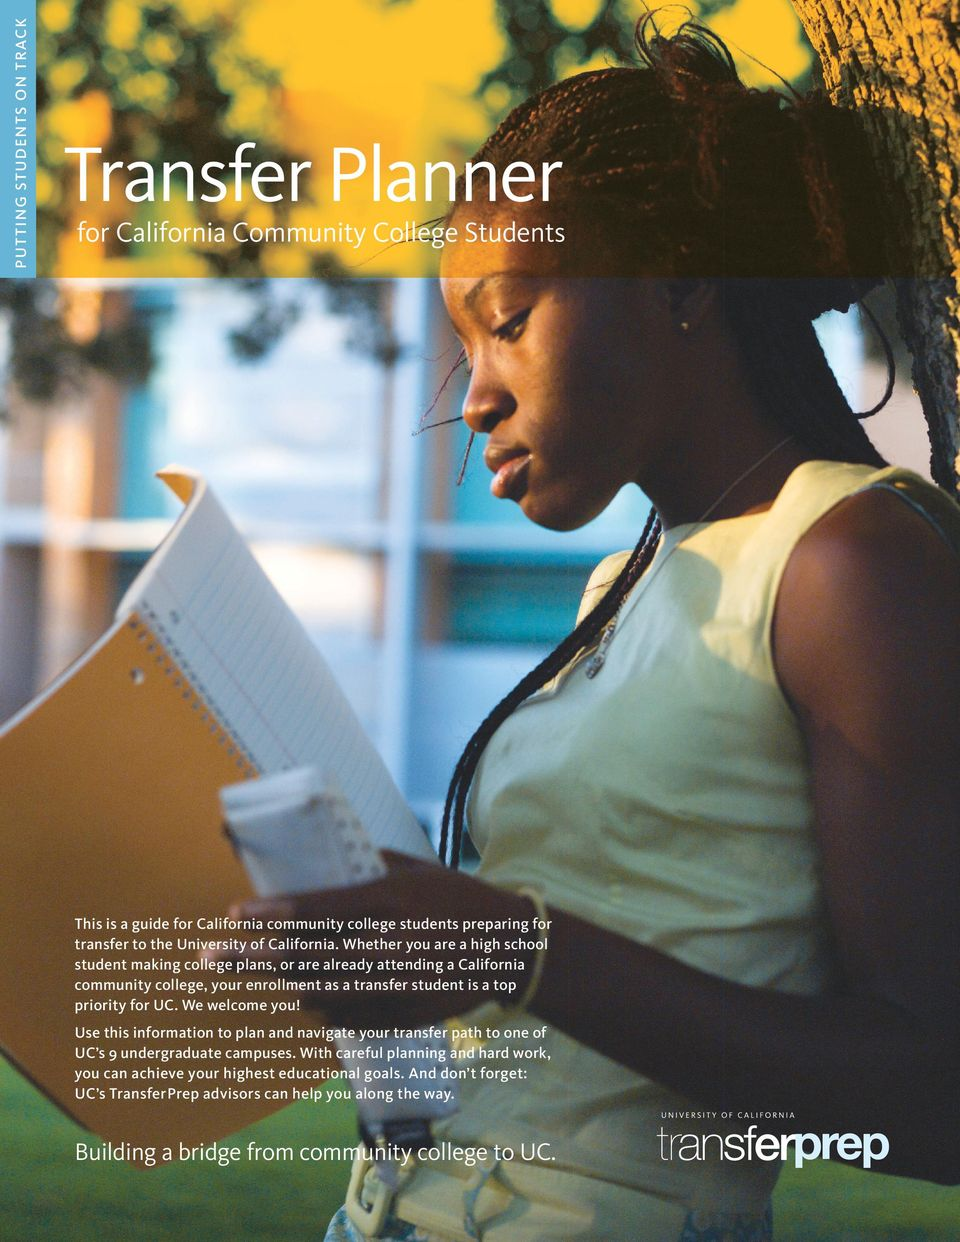 Whether you are a high school student making college plans, or are already attending a California community college, your enrollment as a transfer student is a top priority